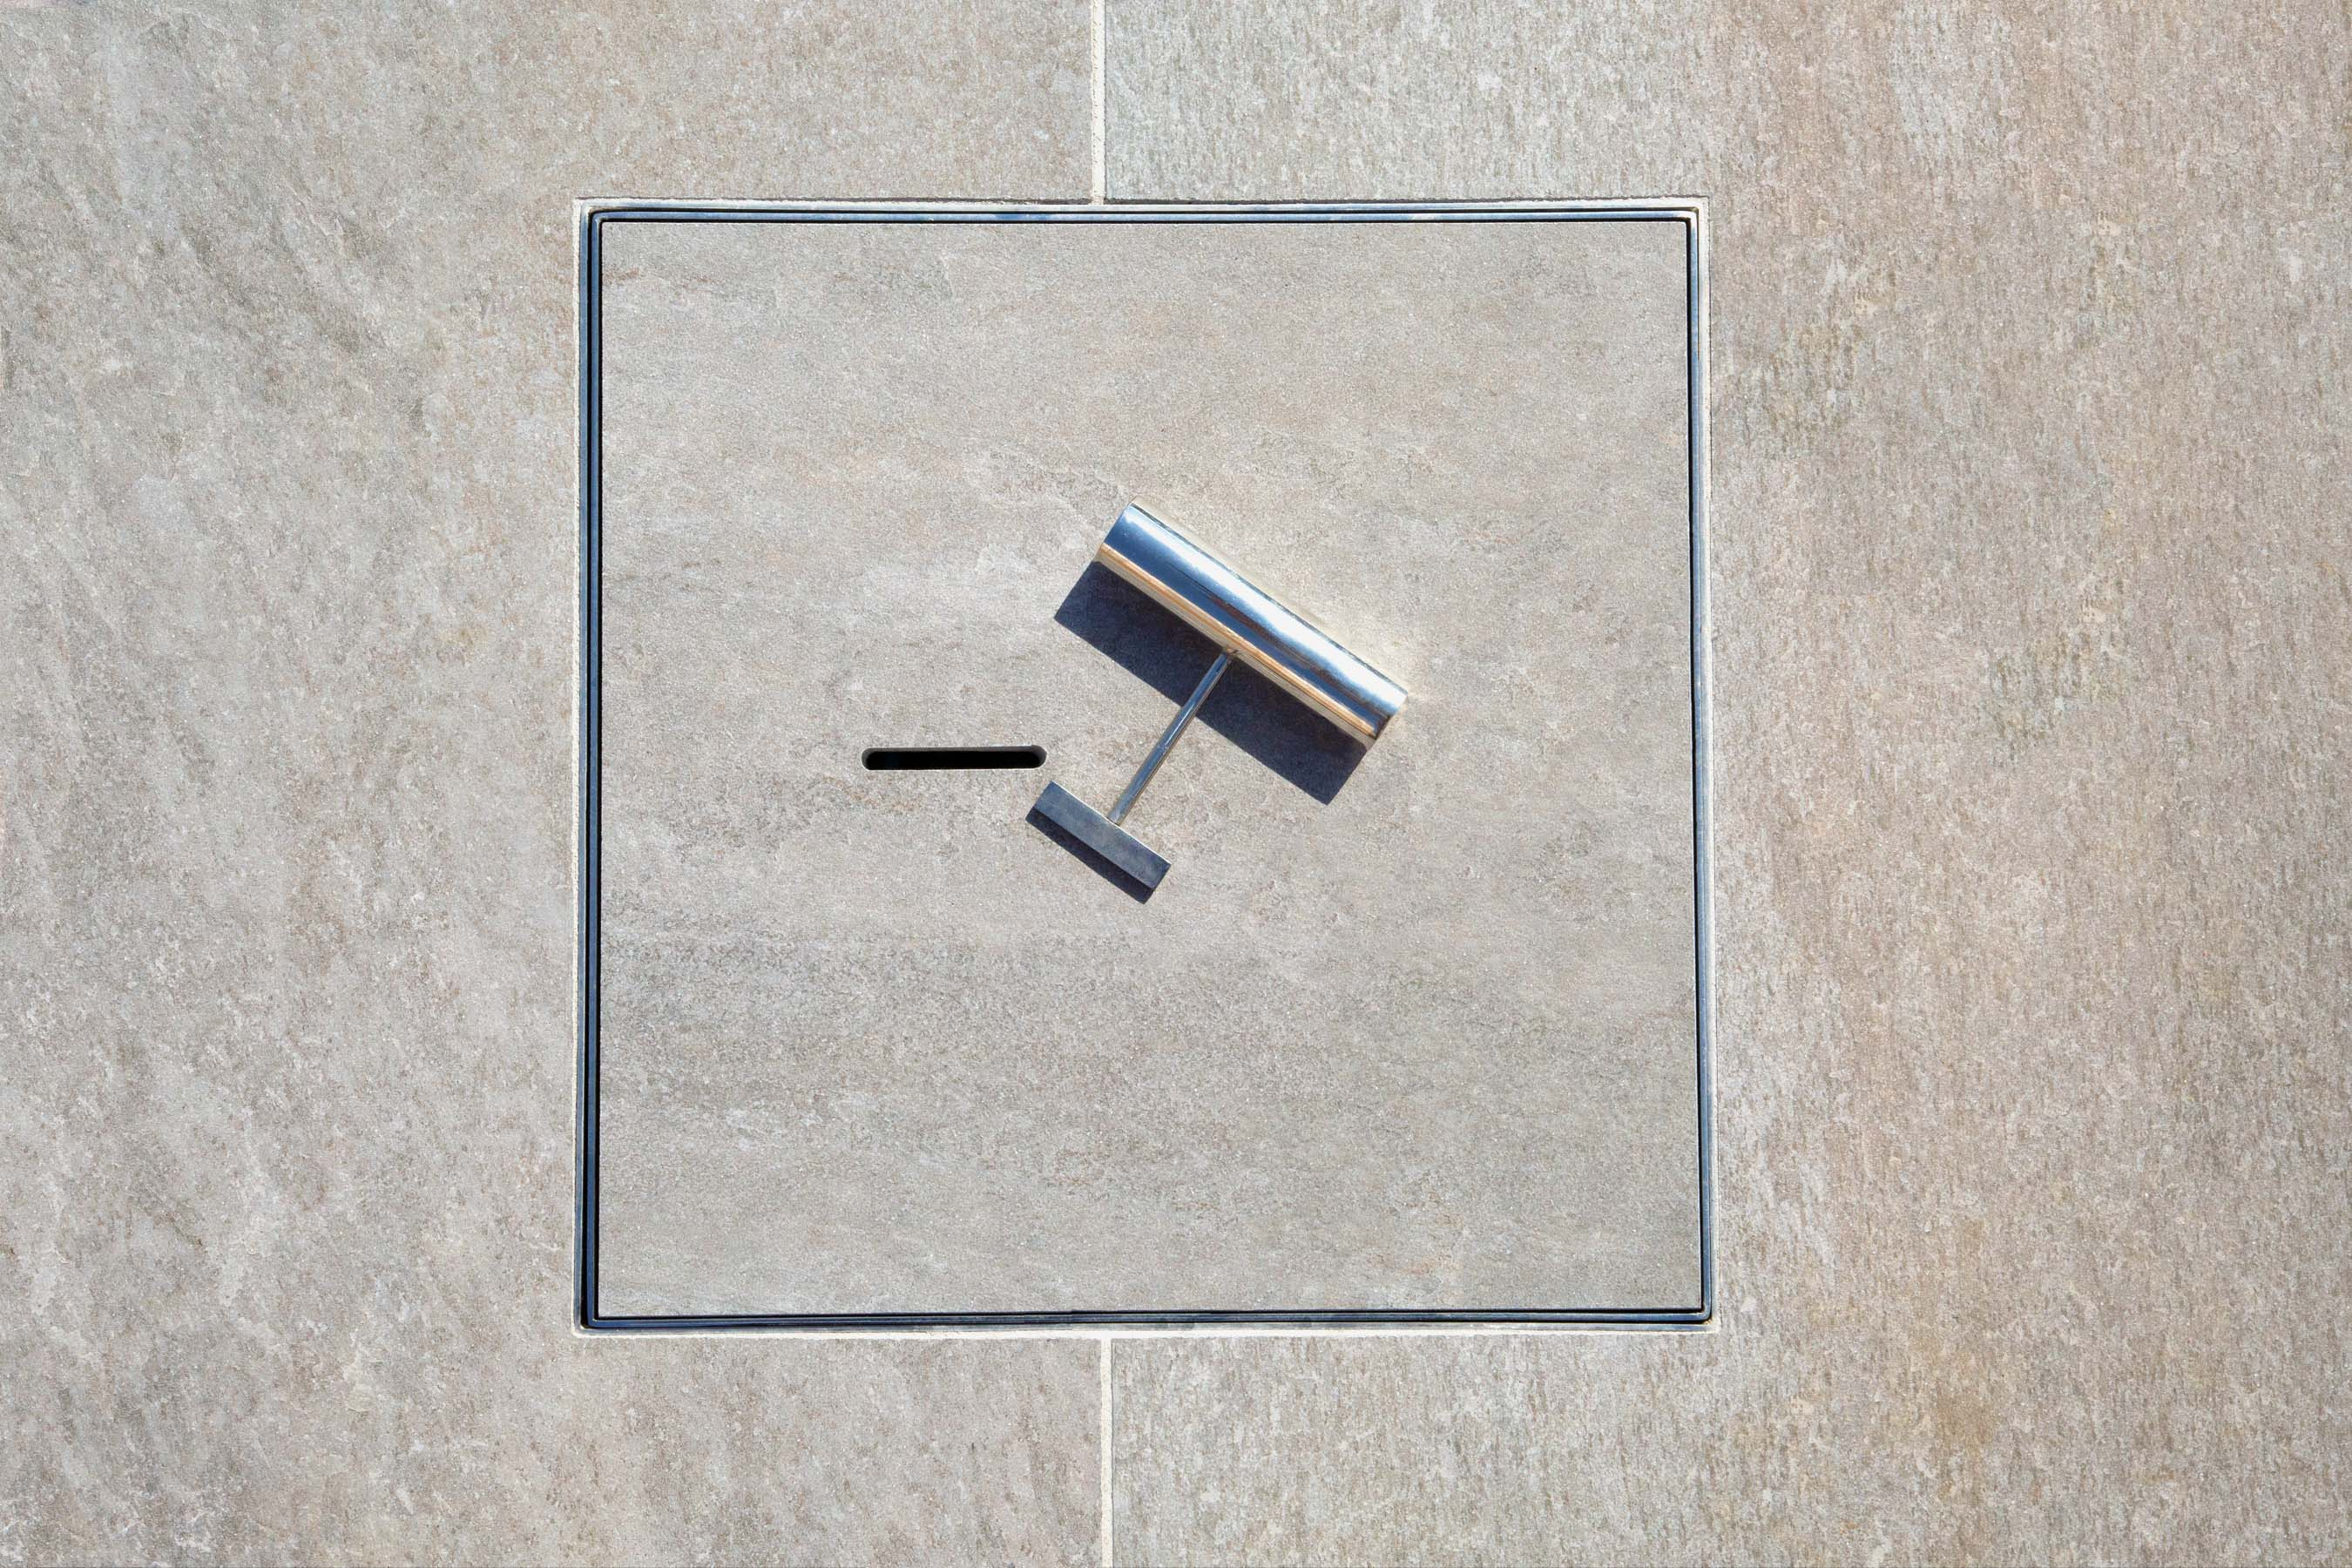 Porcelain-Pavers-Outdoor-20 Gallery fossil-grey-04